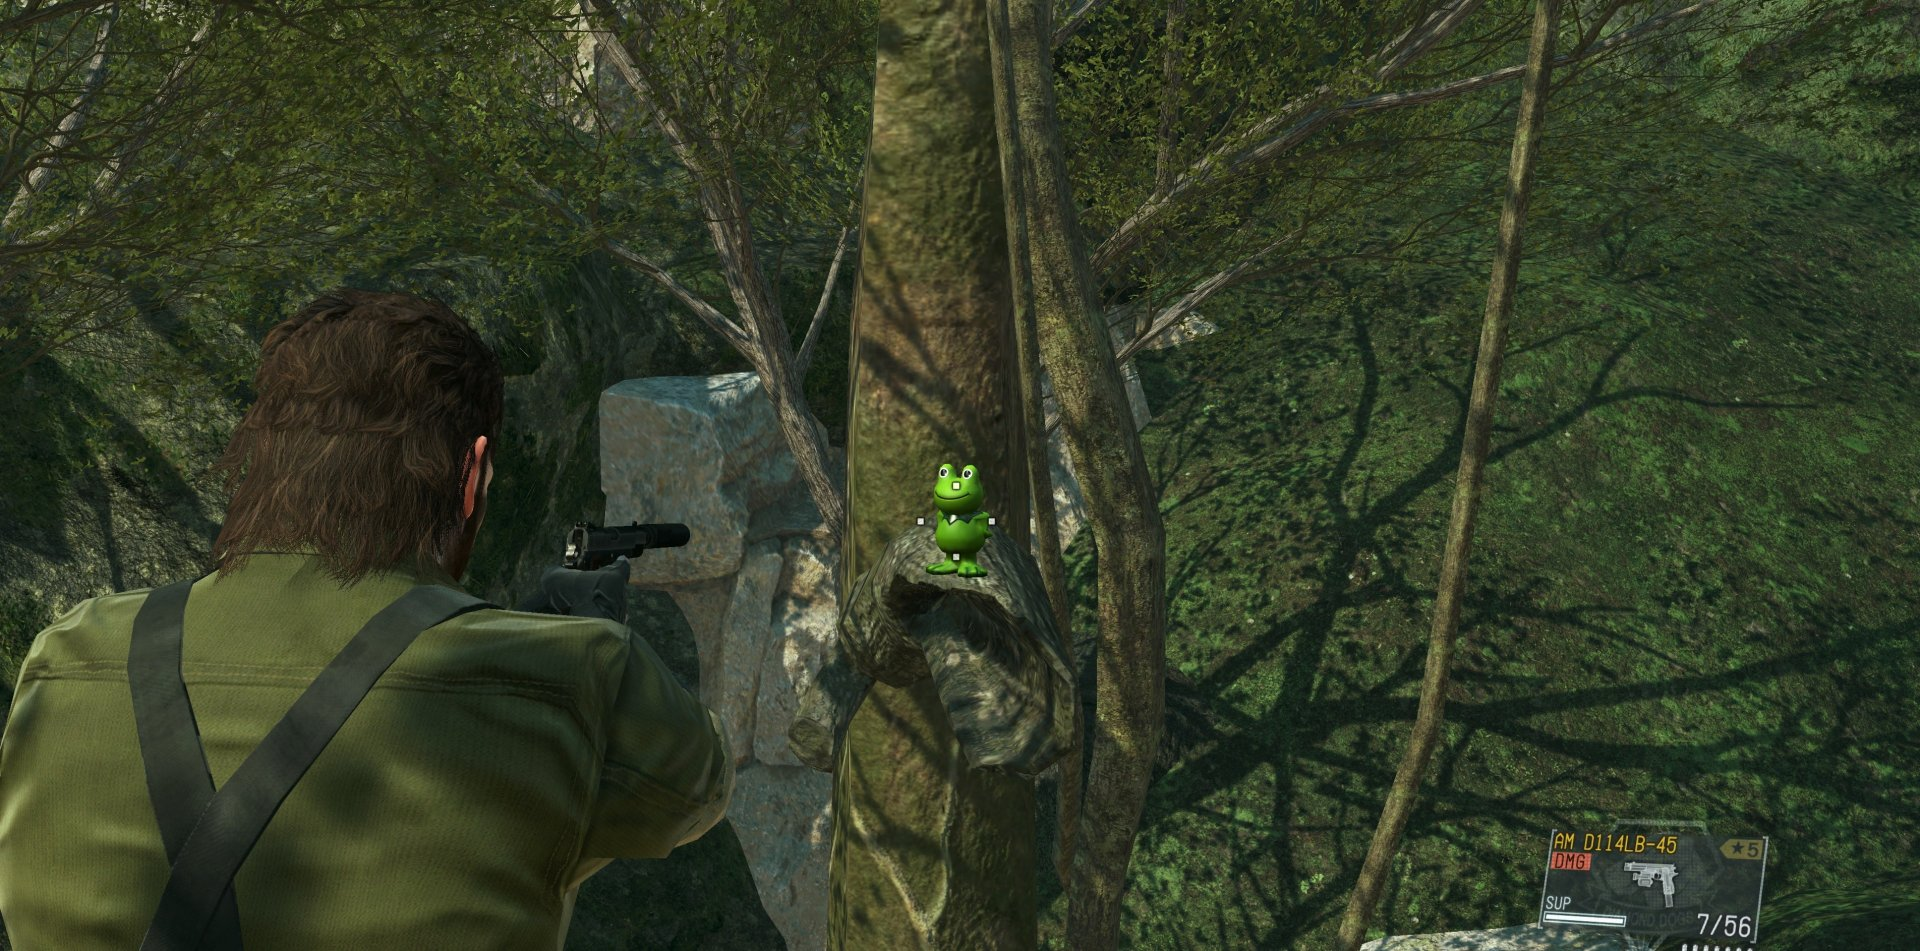 Metal Gear Solid 3 Remake Mod in MGS5-1